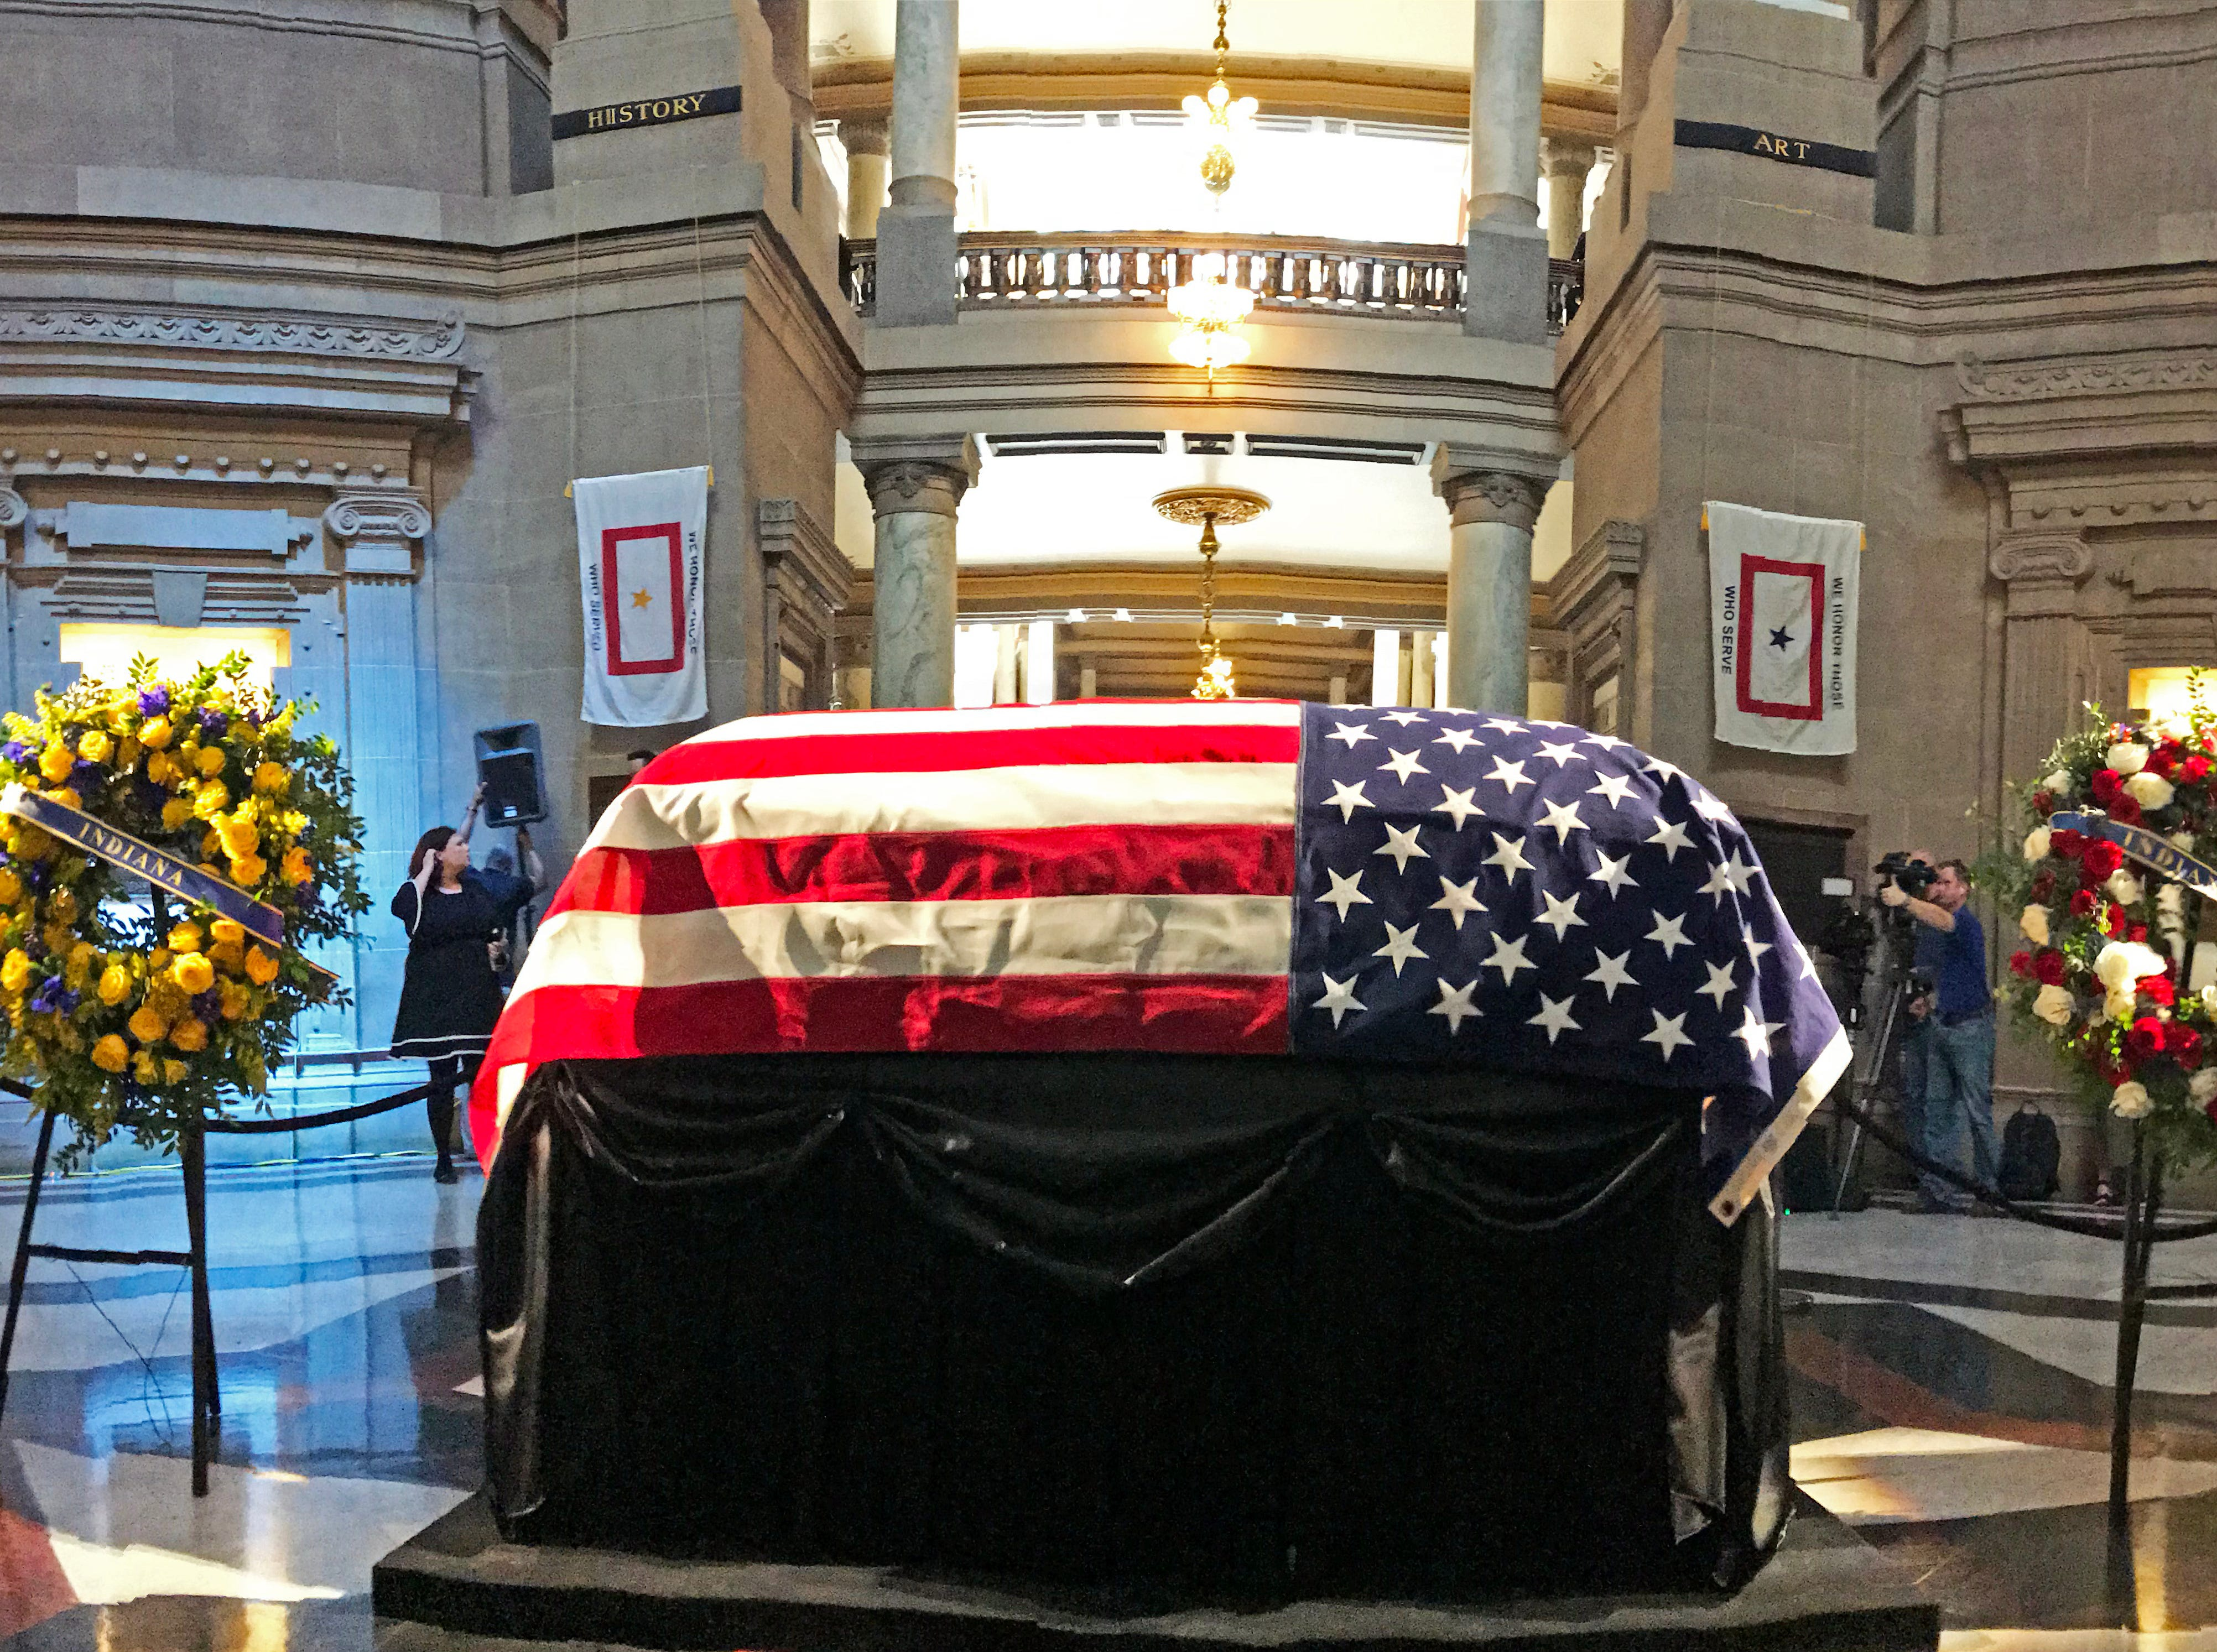 Former Indiana Senator Richard Lugar lies in state in the Statehouse rotunda in Indianapolis Tuesday, May 14, 2019.